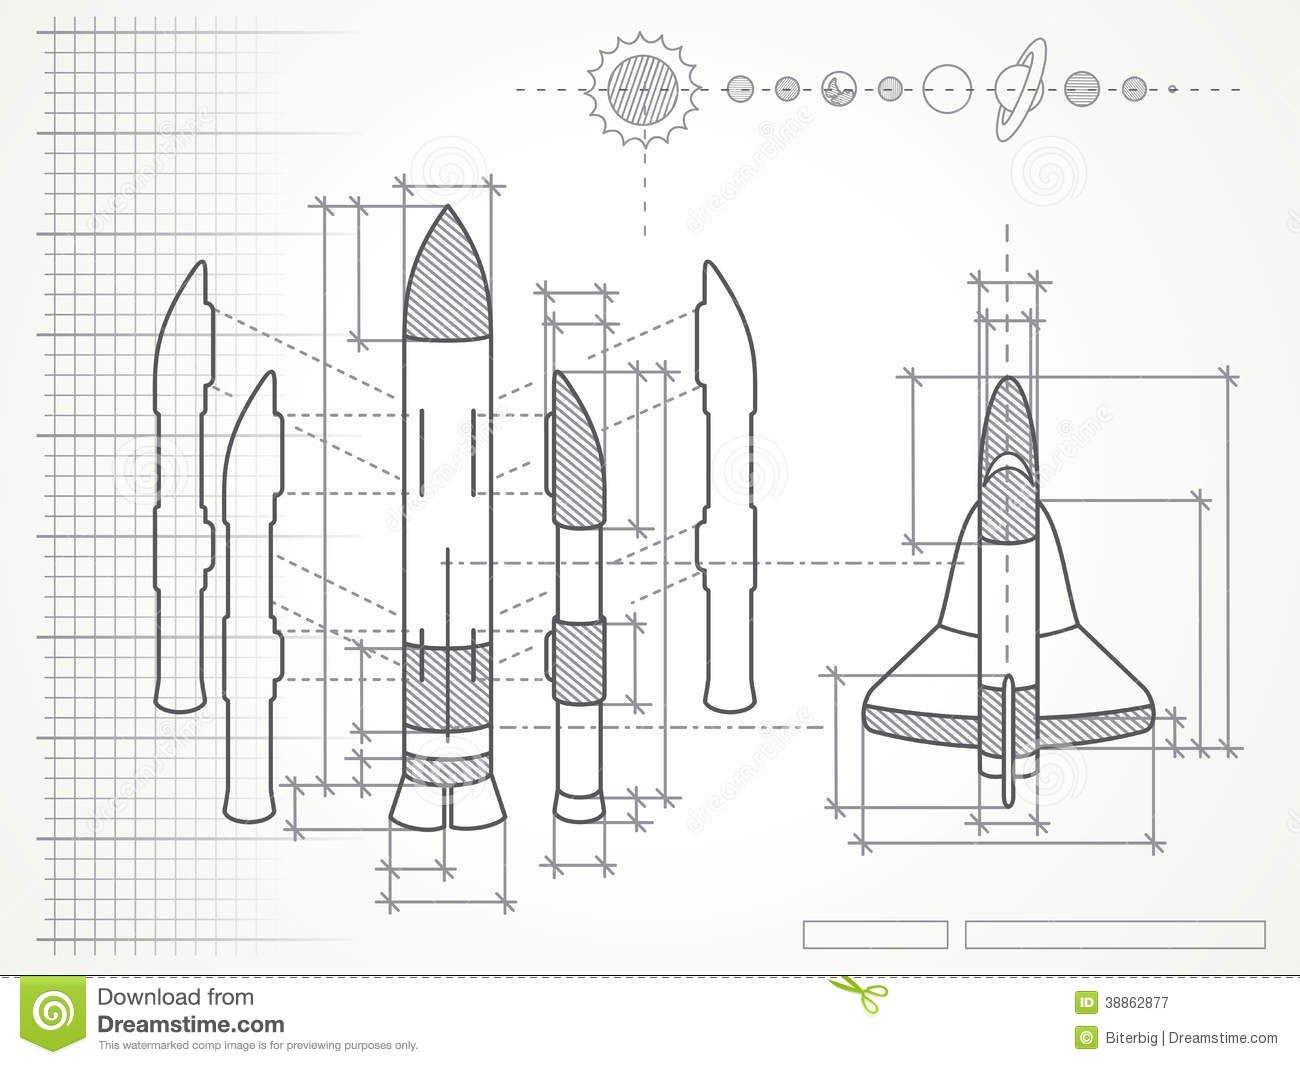 blueprint-space-shuttle-scheme-planets-38862877 What Is Schematic Knowledge on